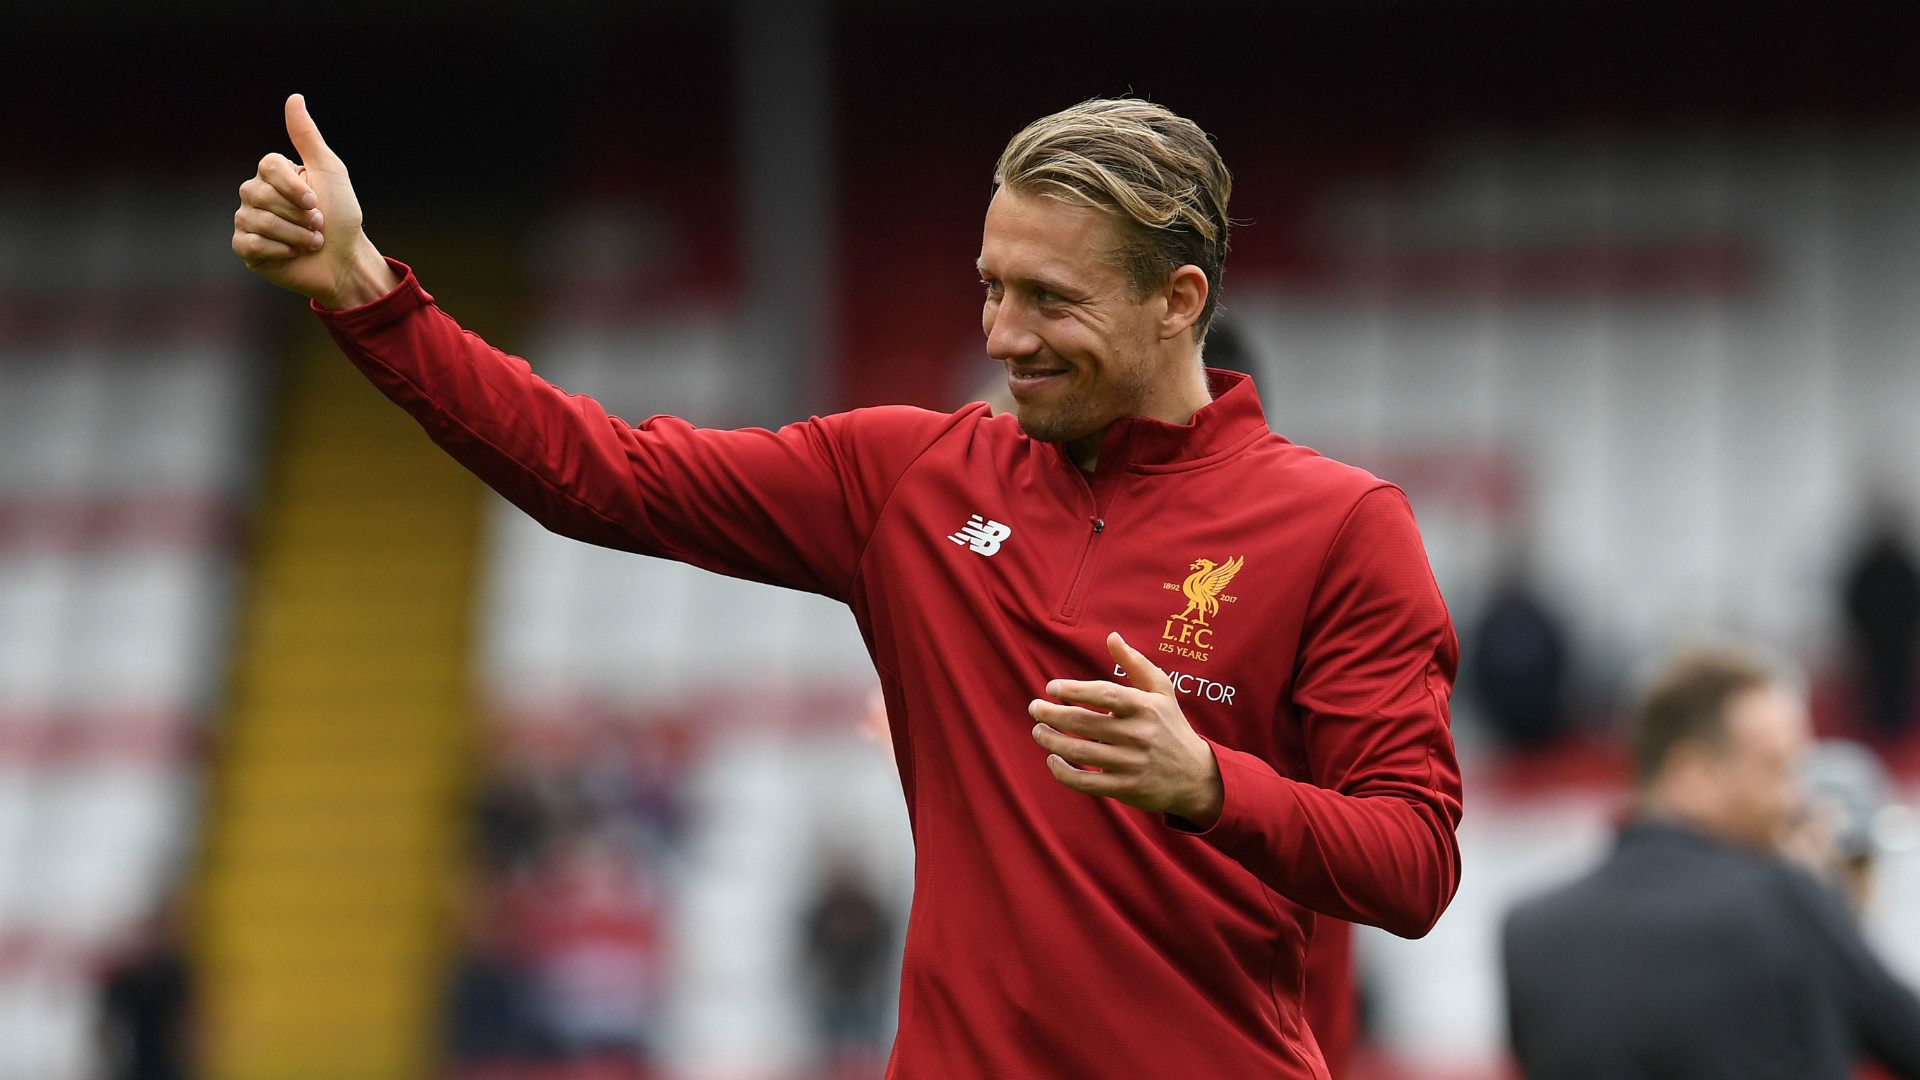 Lucas leaves Liverpool for Lazio 'to play more games'